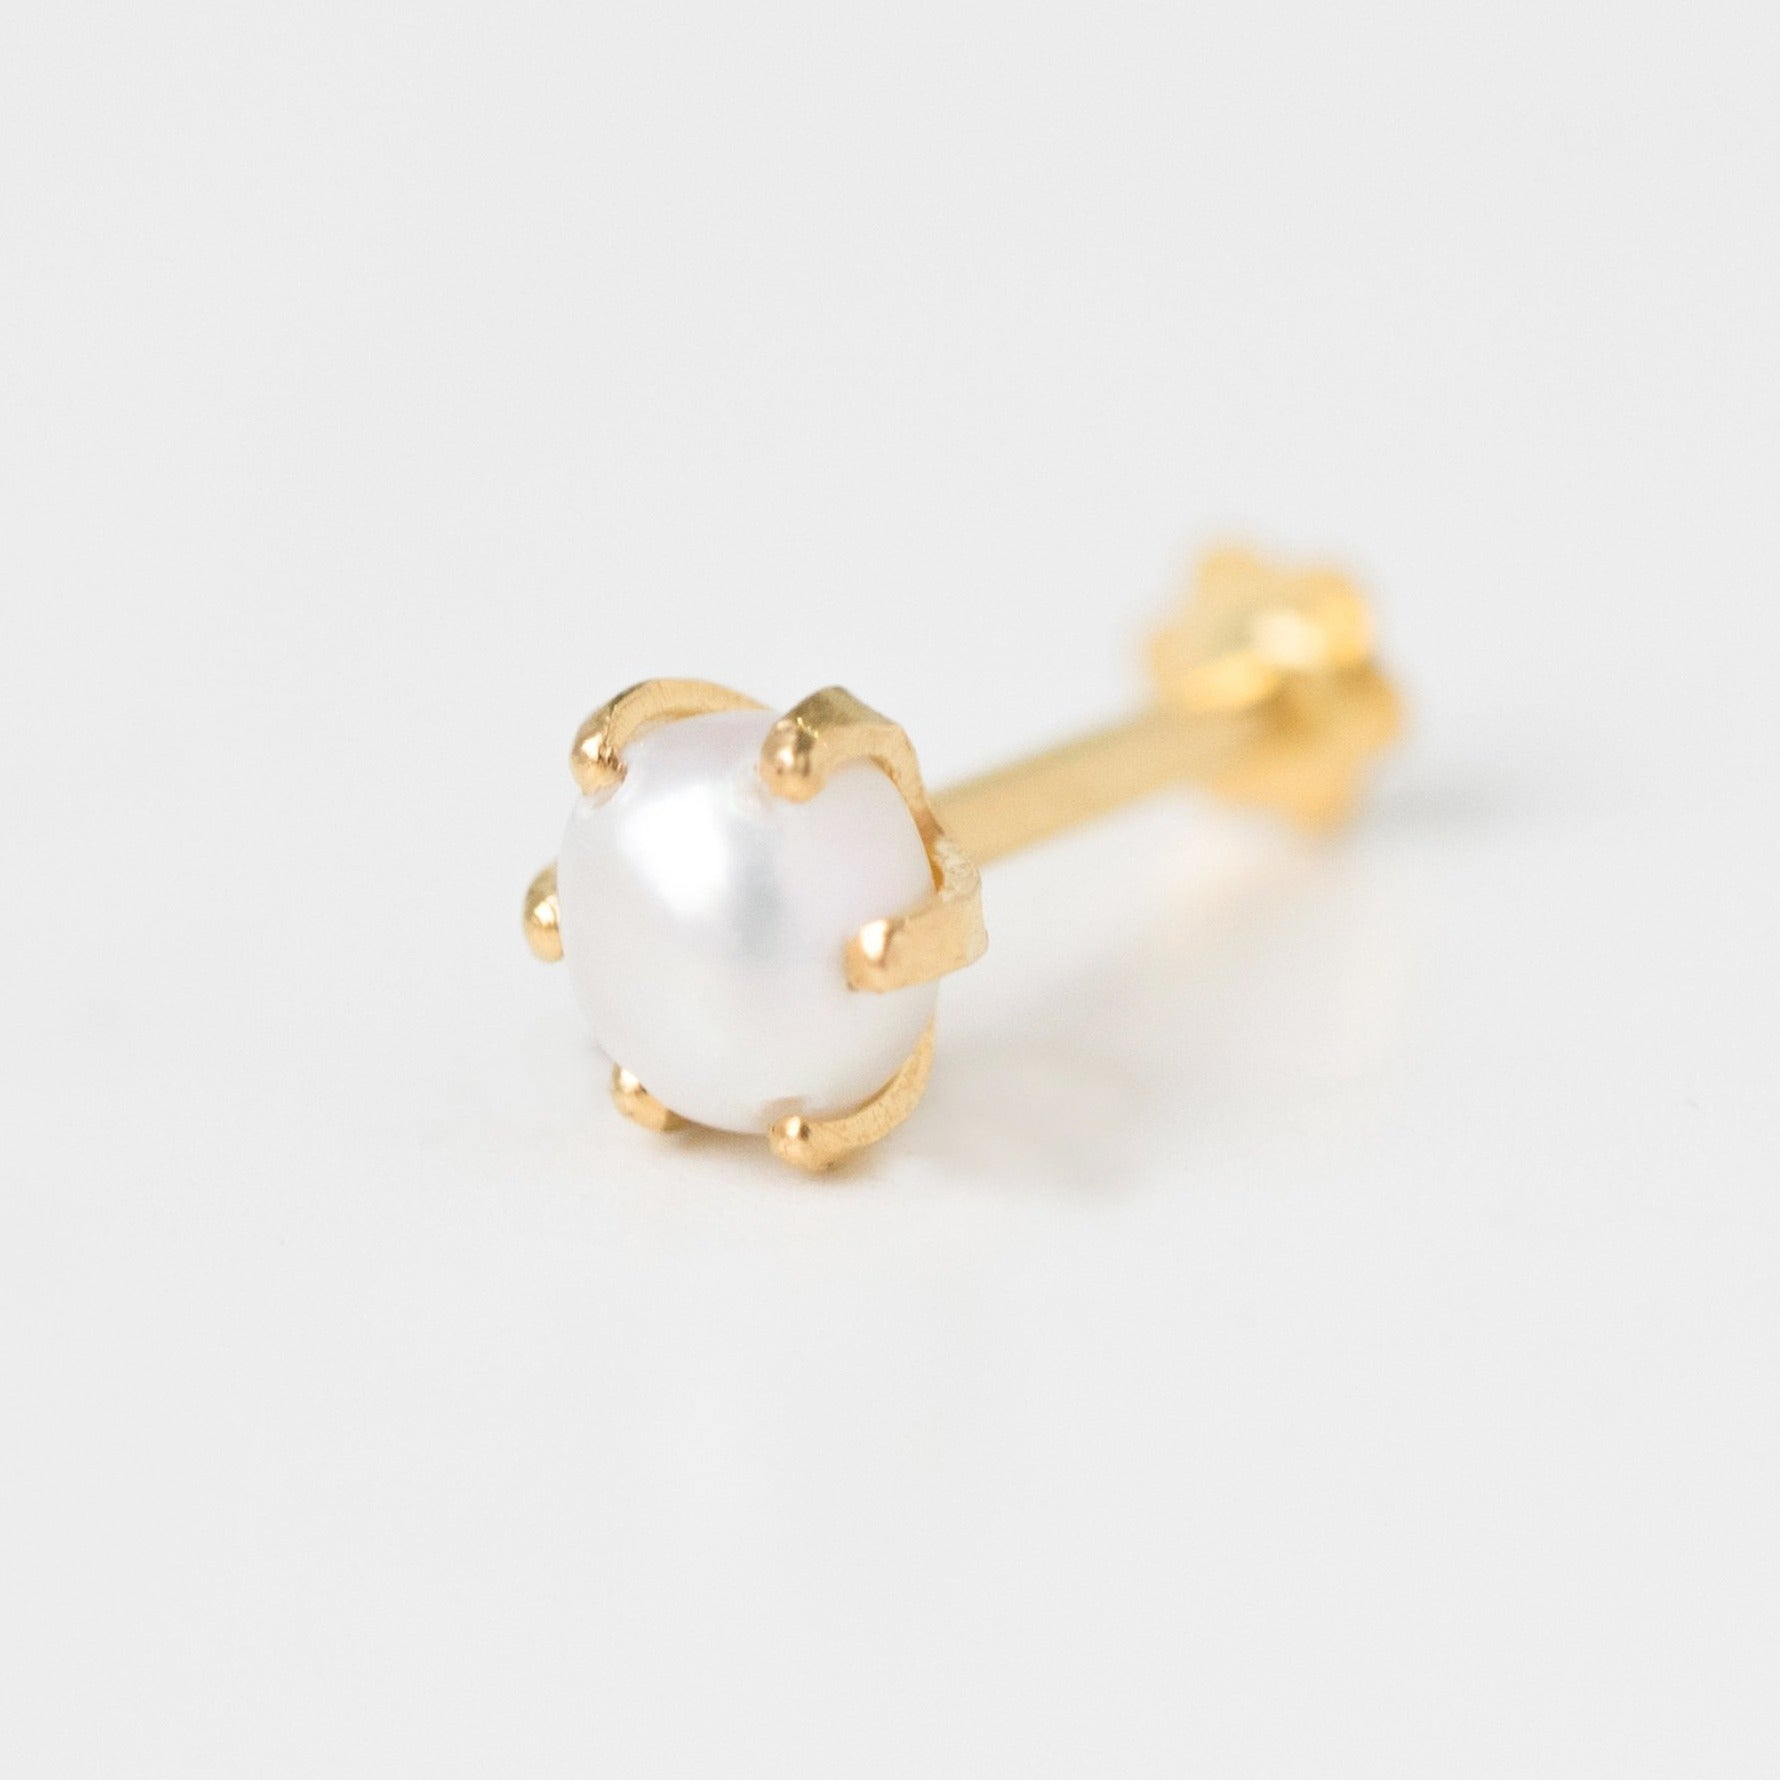 18ct Yellow Gold Screw Back Nose Stud set with a Cultured Pearl NIP-5-350